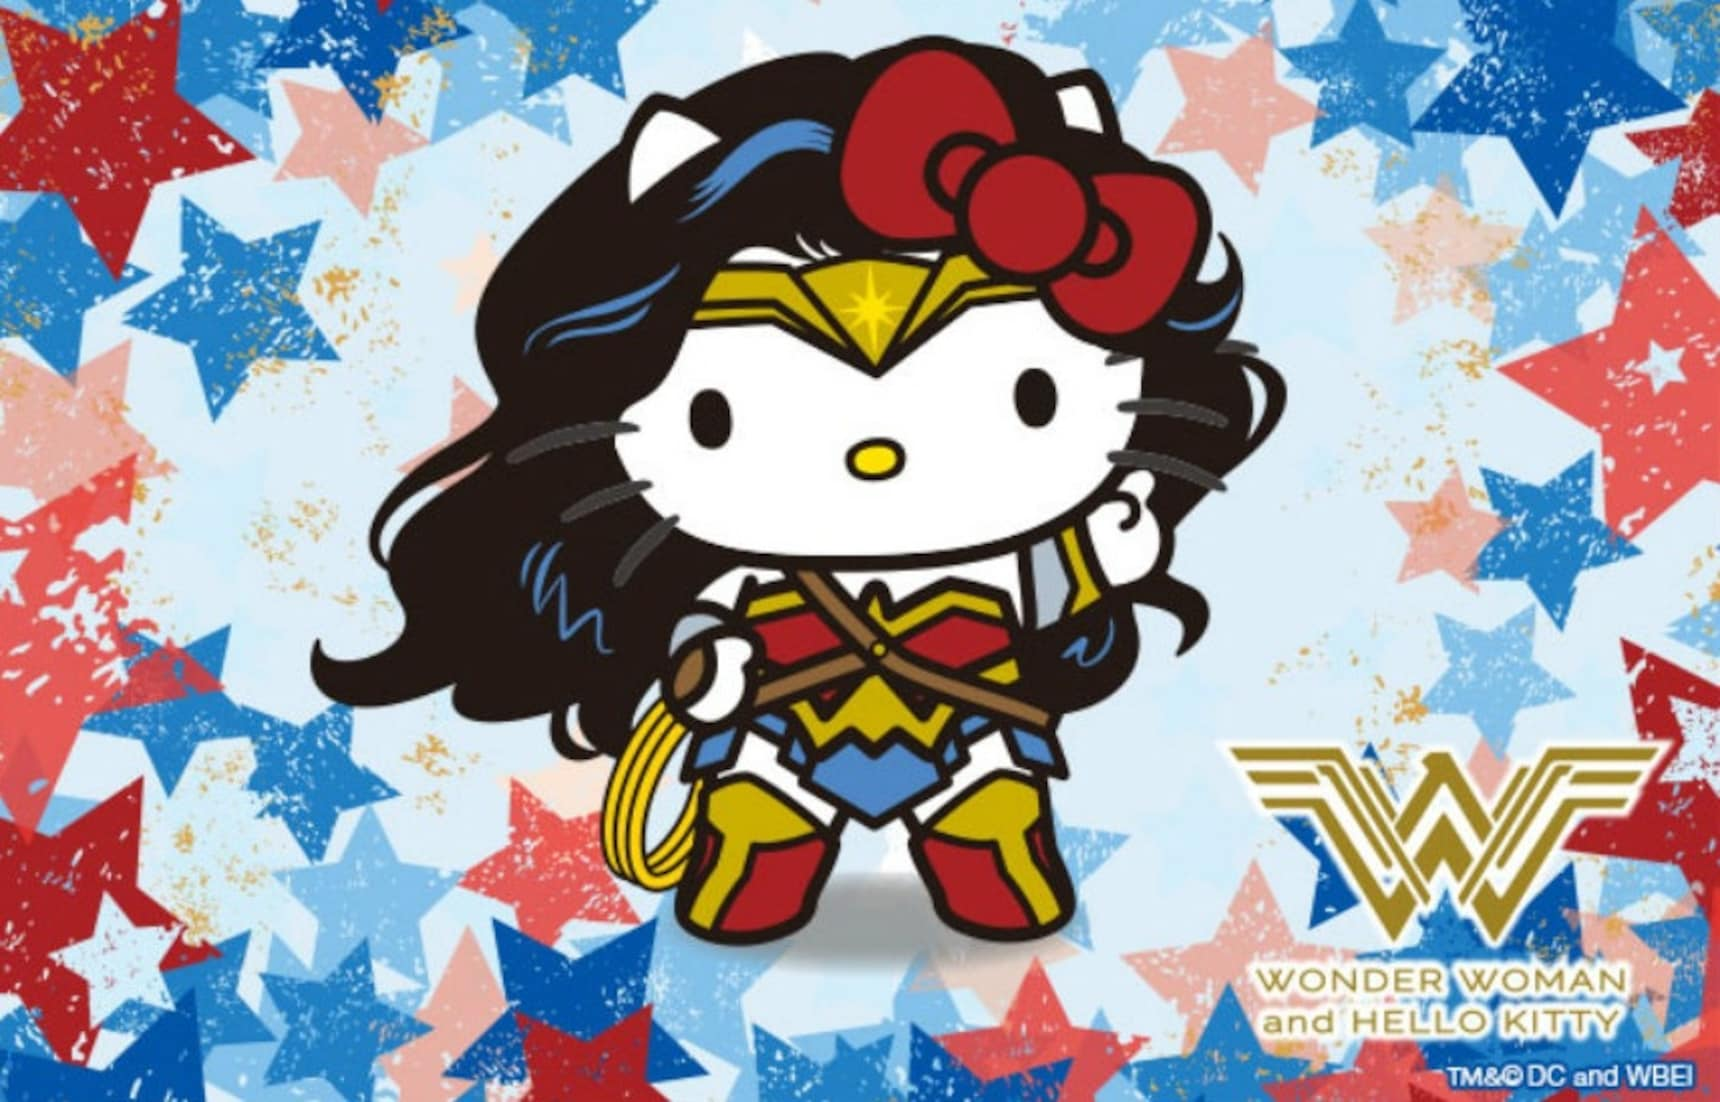 Wonder Woman & Hello Kitty Finally Join Forces